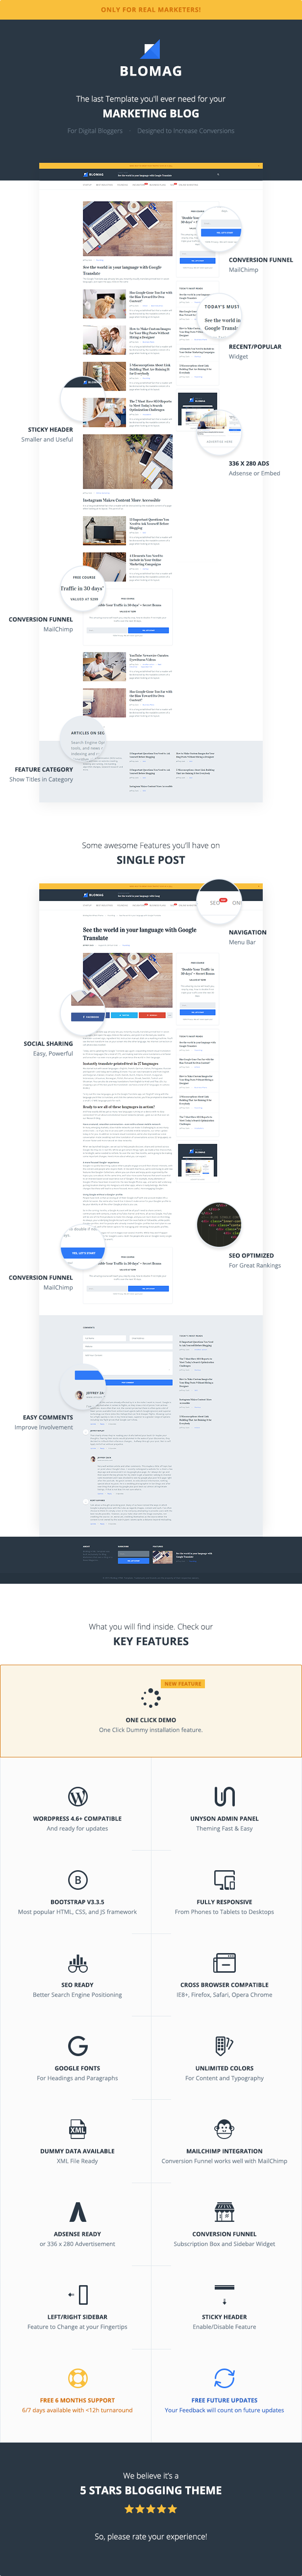 BloMag WordPress Theme - Exclusively for Marketers - 2